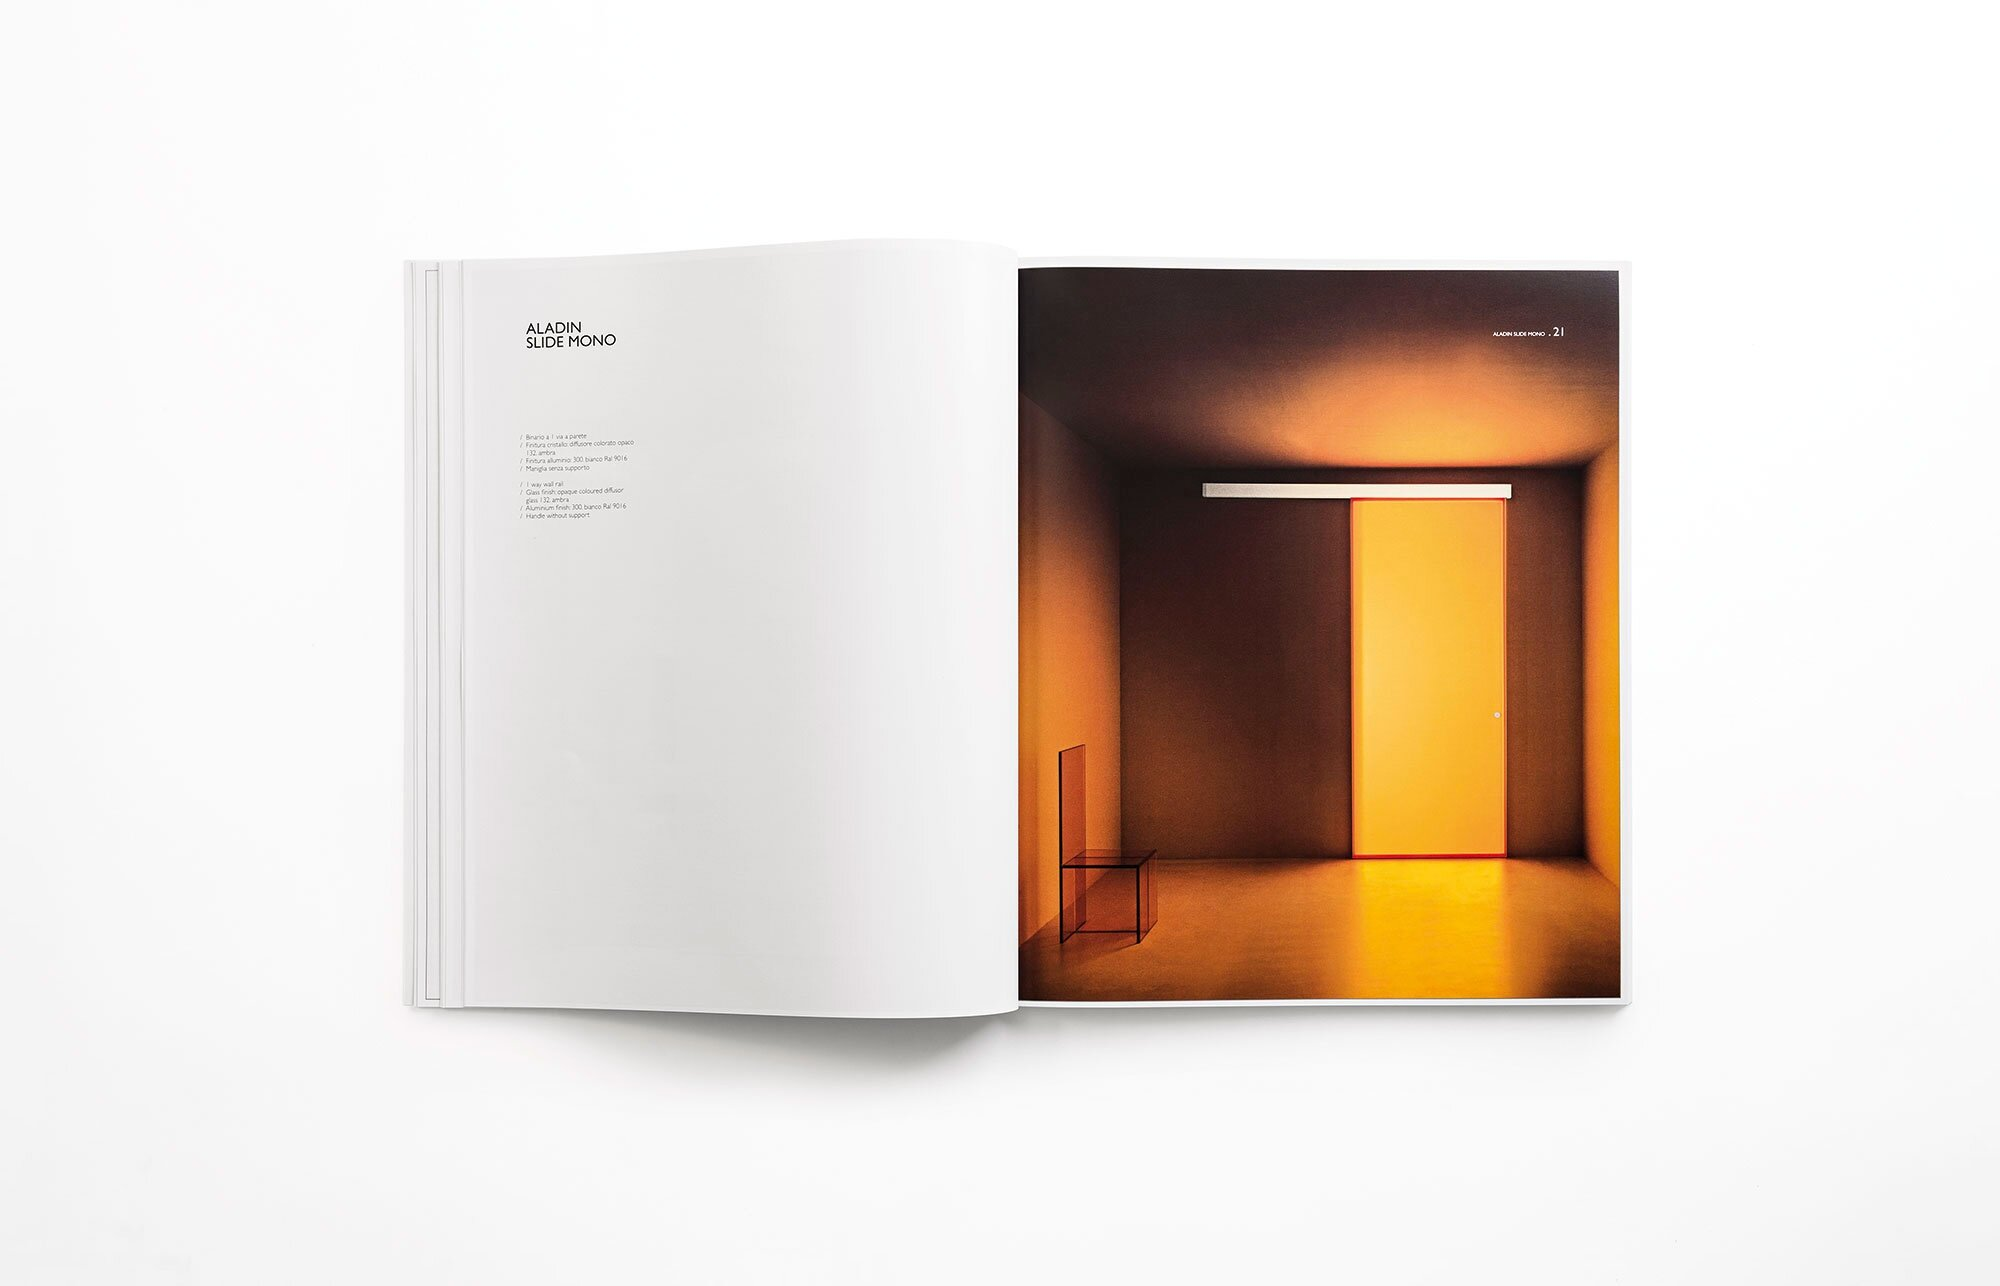 The Aladdin pocket door system (here and below) was the first door collection designed by Piero Lissoni for Glas Italia and it established a design approach focused on the application of glass textures and colours to architectural components. Book designed by Lissoni Associati. Photo c/o Glas Italia.